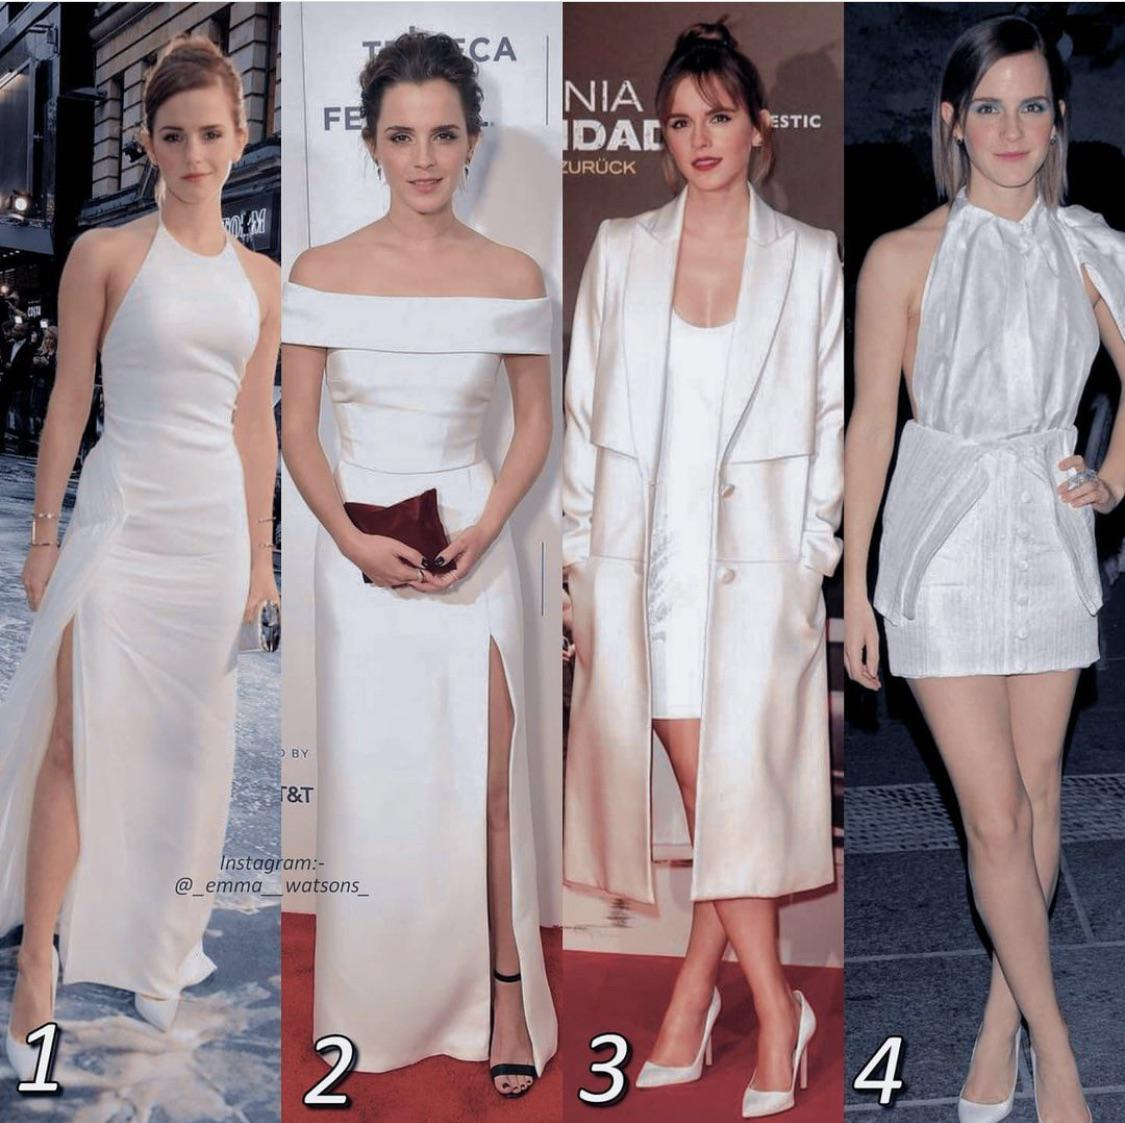 White outfits